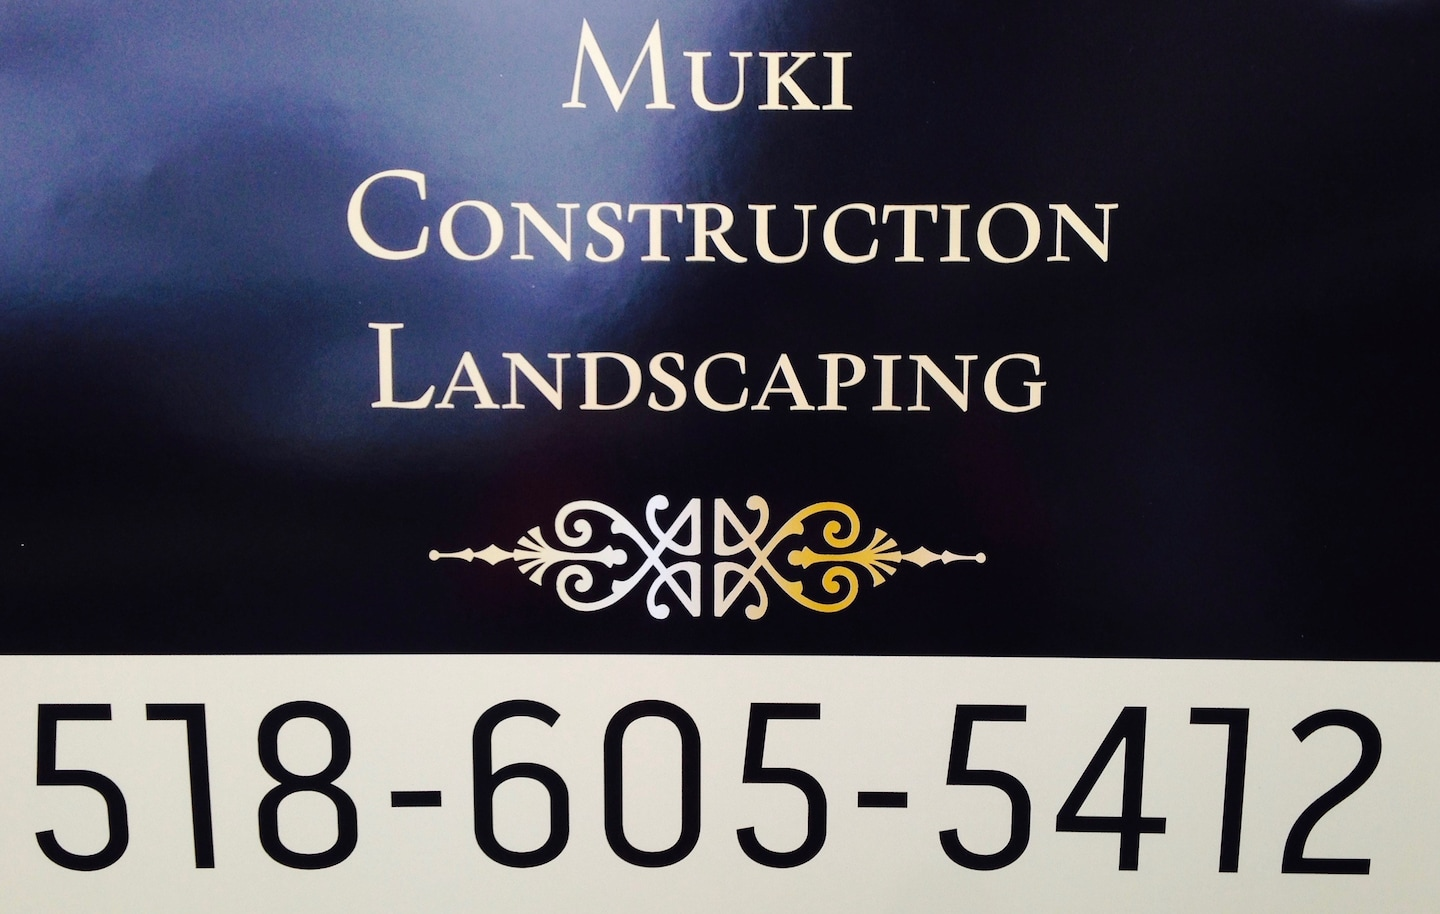 Muki Construction & Landscaping